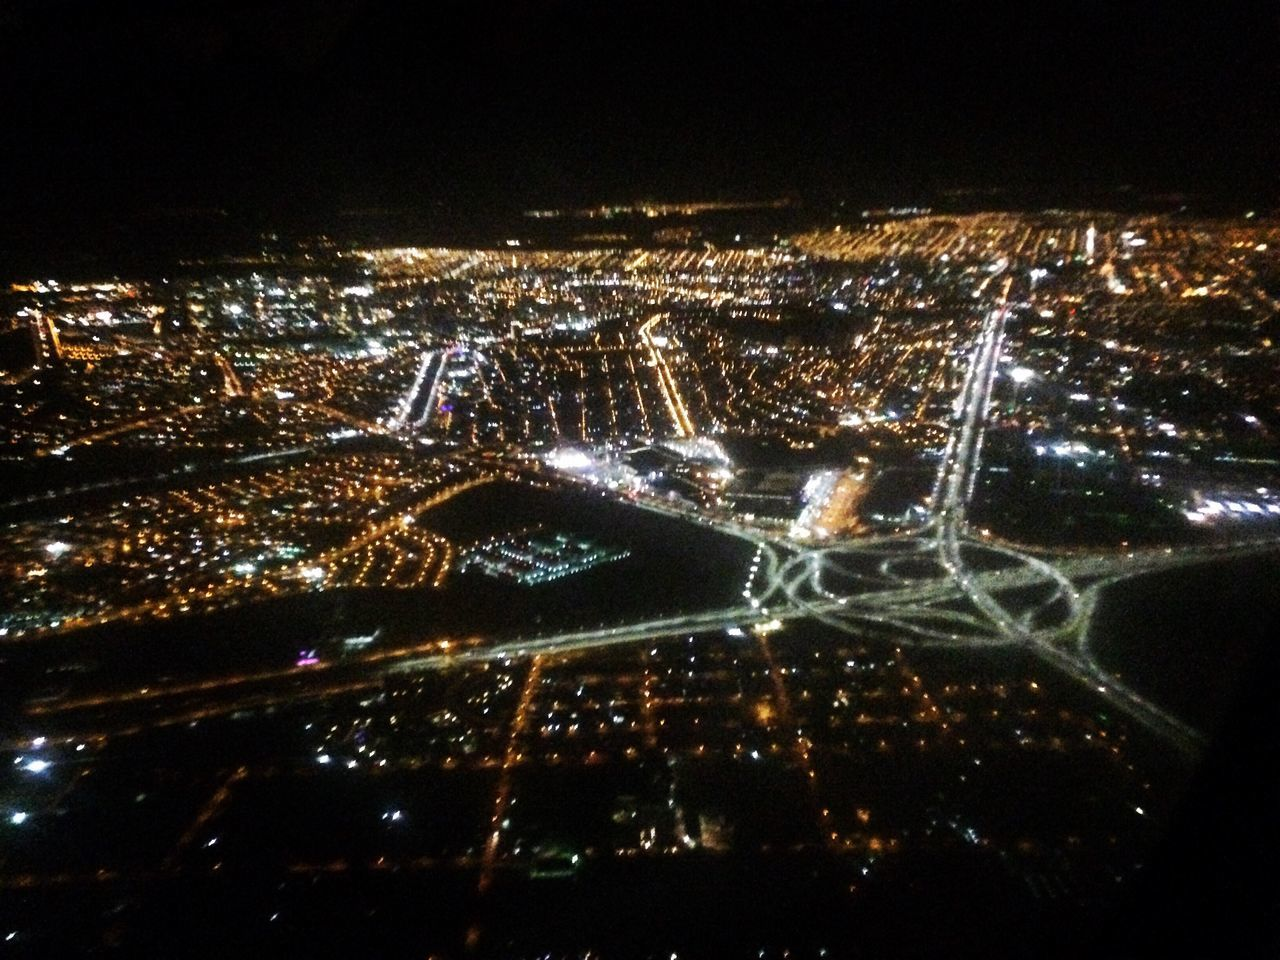 night, illuminated, city, cityscape, no people, aerial view, architecture, outdoors, building exterior, sky